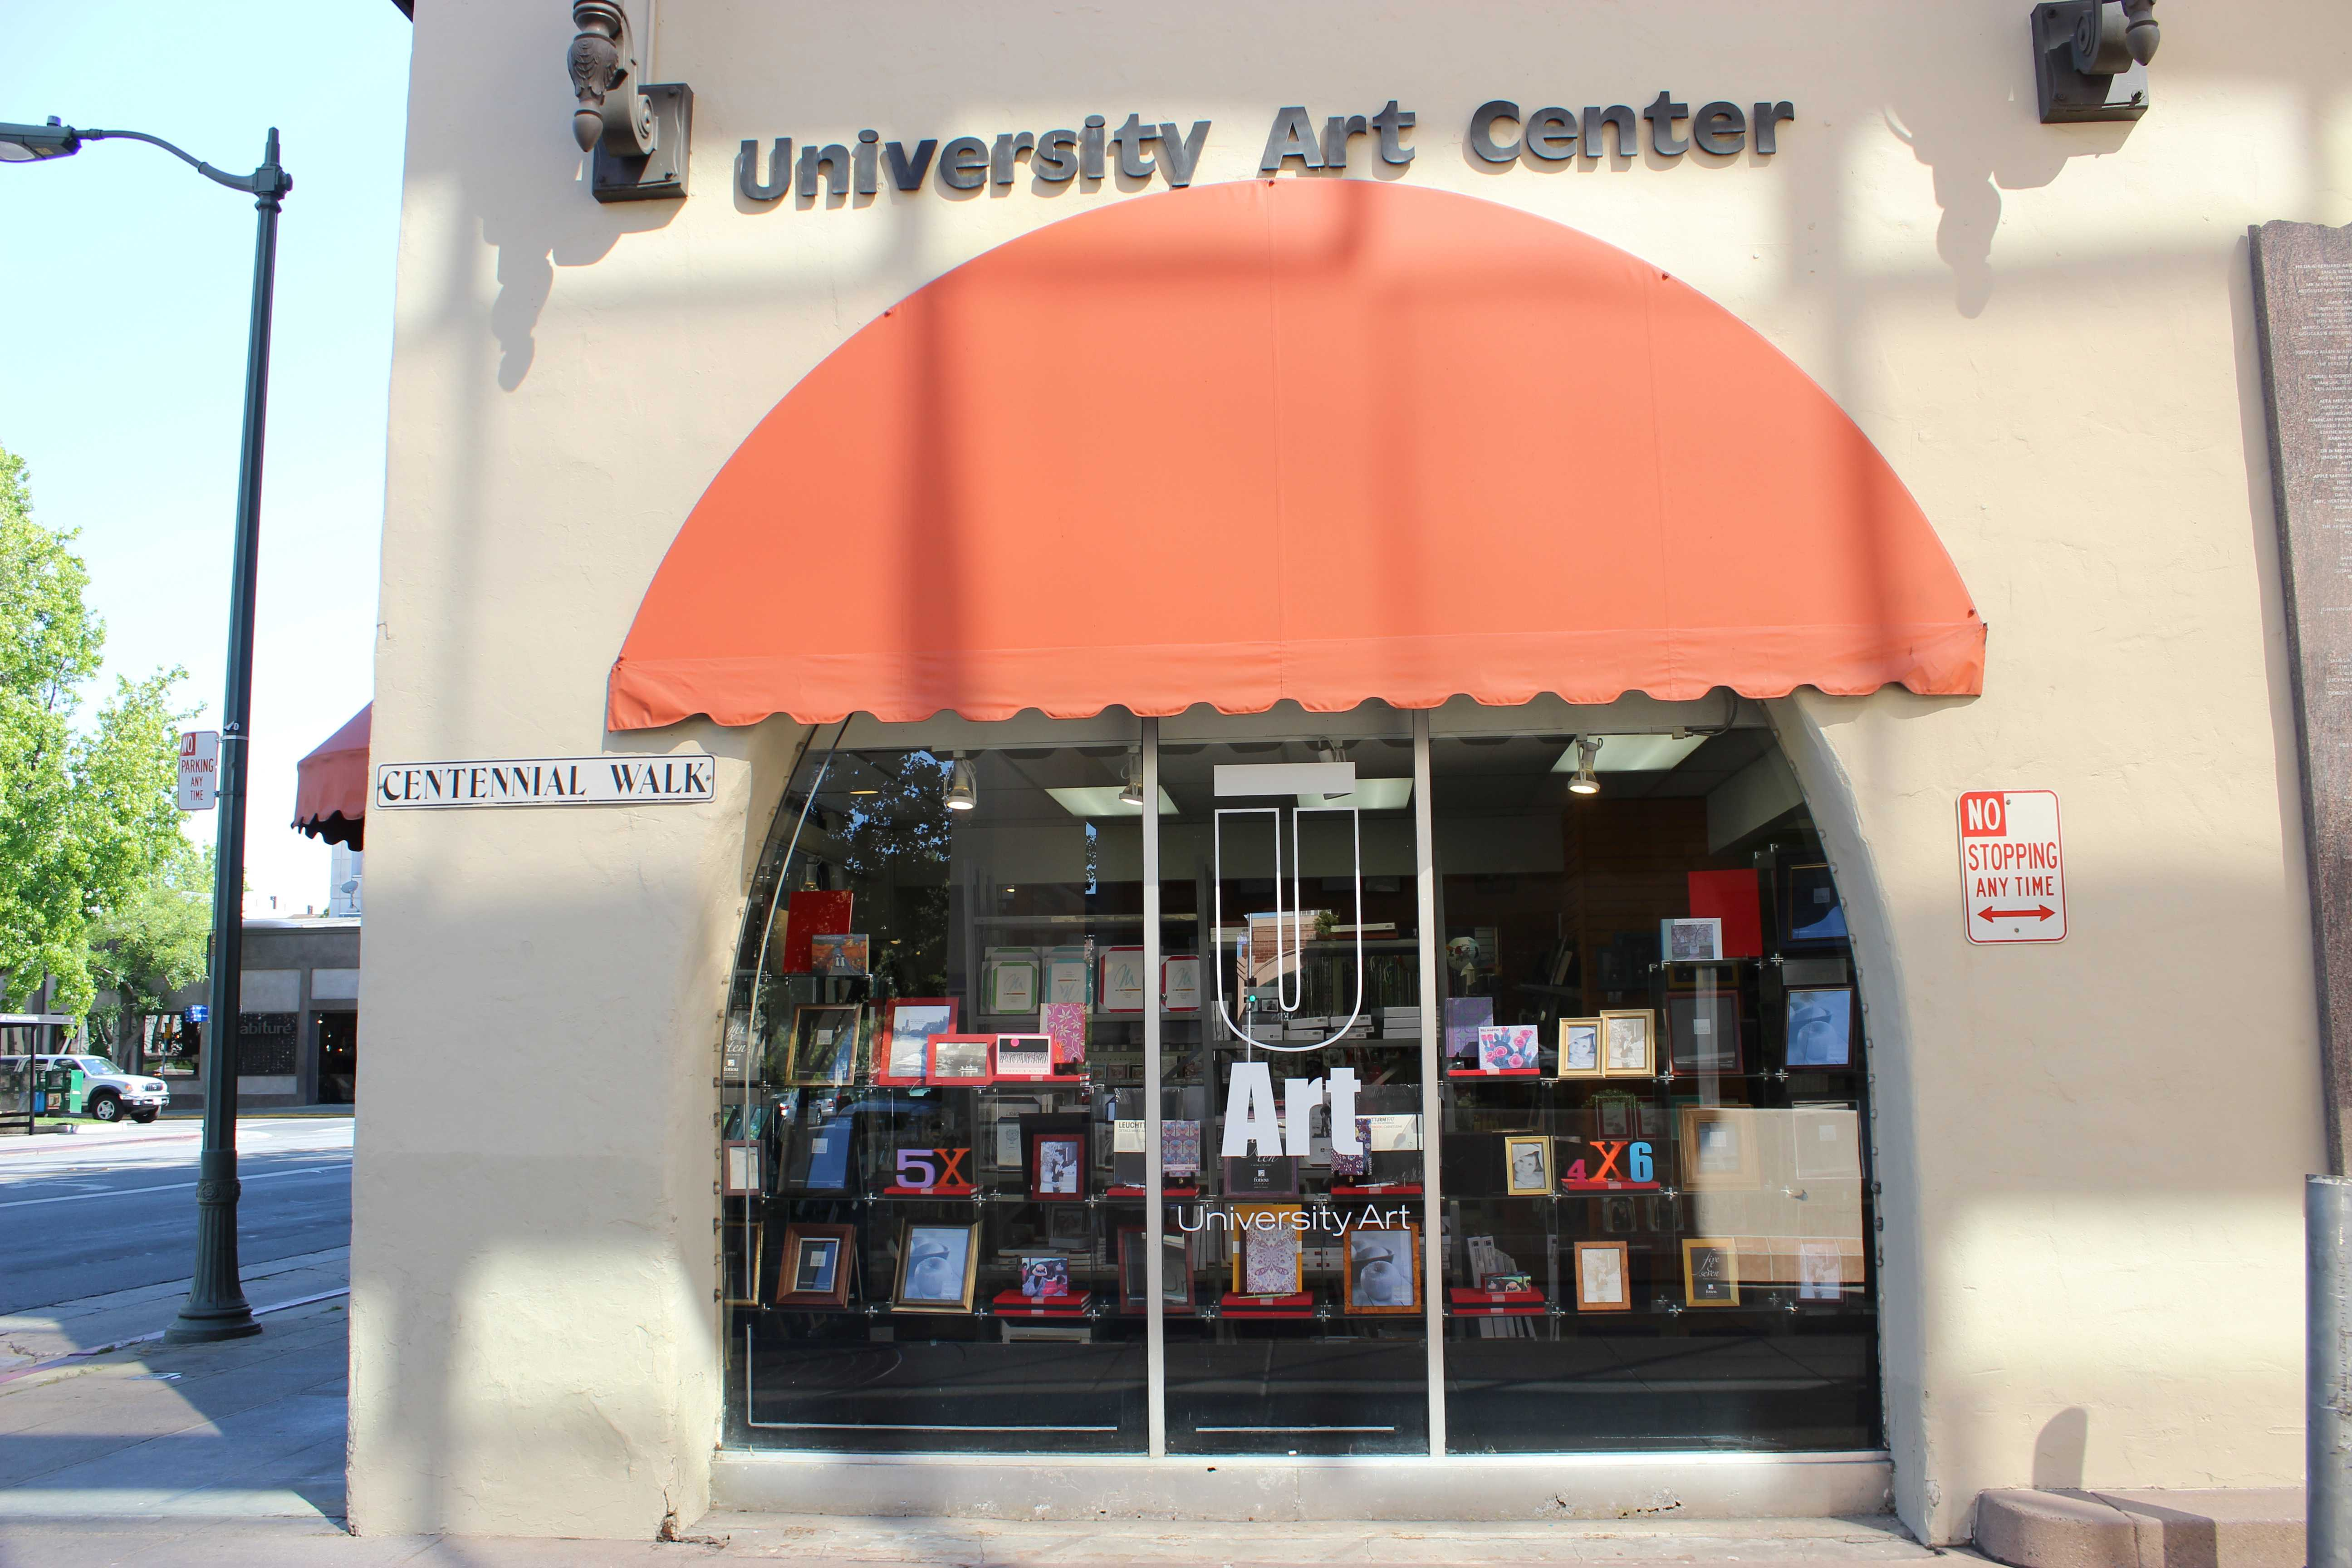 After 45 years of business in Palo Alto, University Art is relocating to Redwood City due to expensive rent.